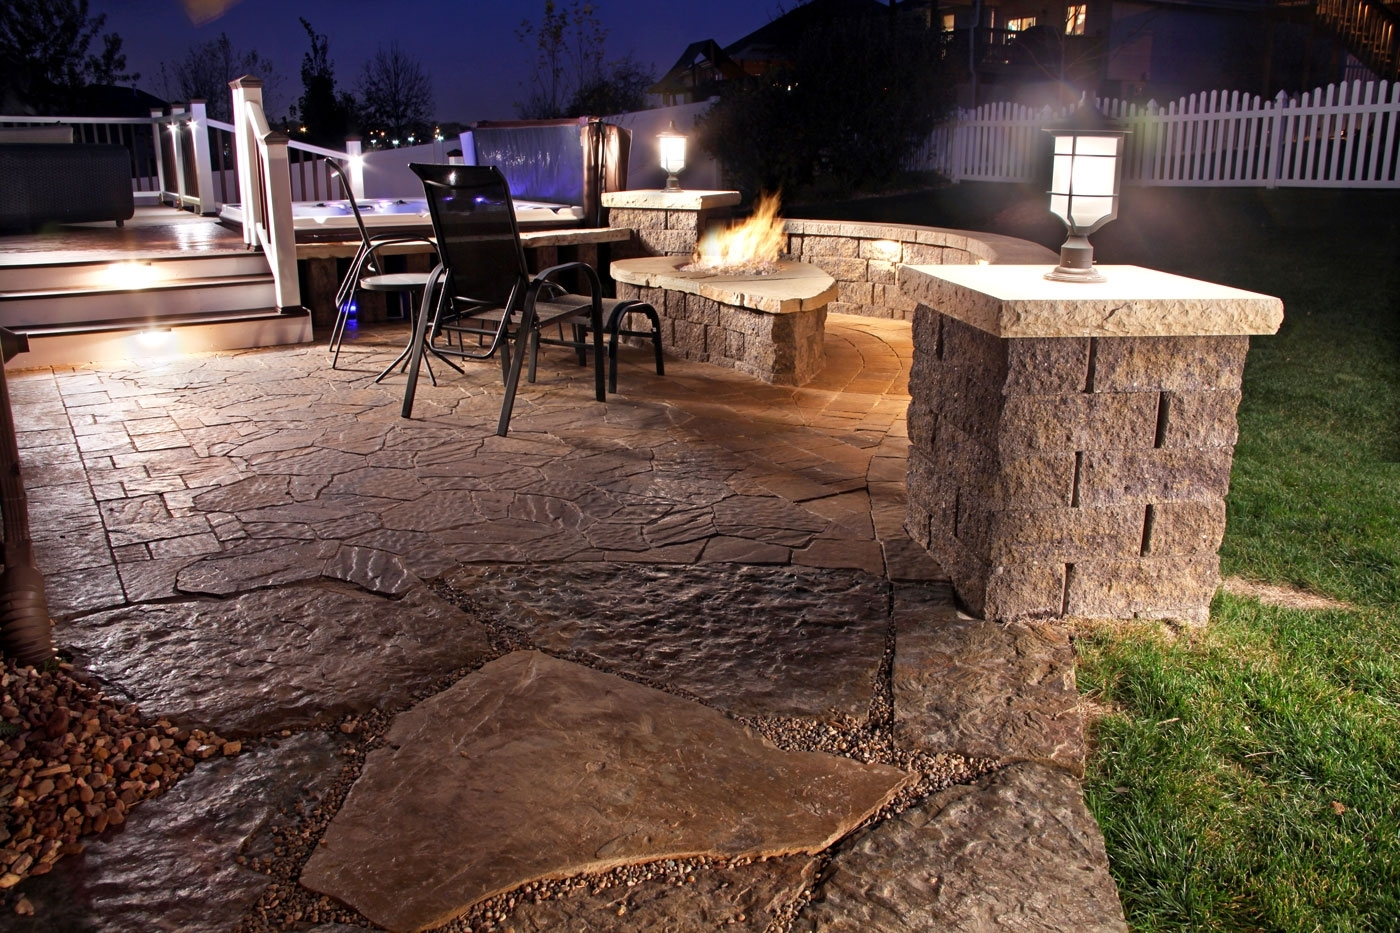 2019 Outdoor Dining Space Lighting Fixtures With Landscape Spotlights Throughout Outdoor Wall Patio Lighting (View 1 of 20)